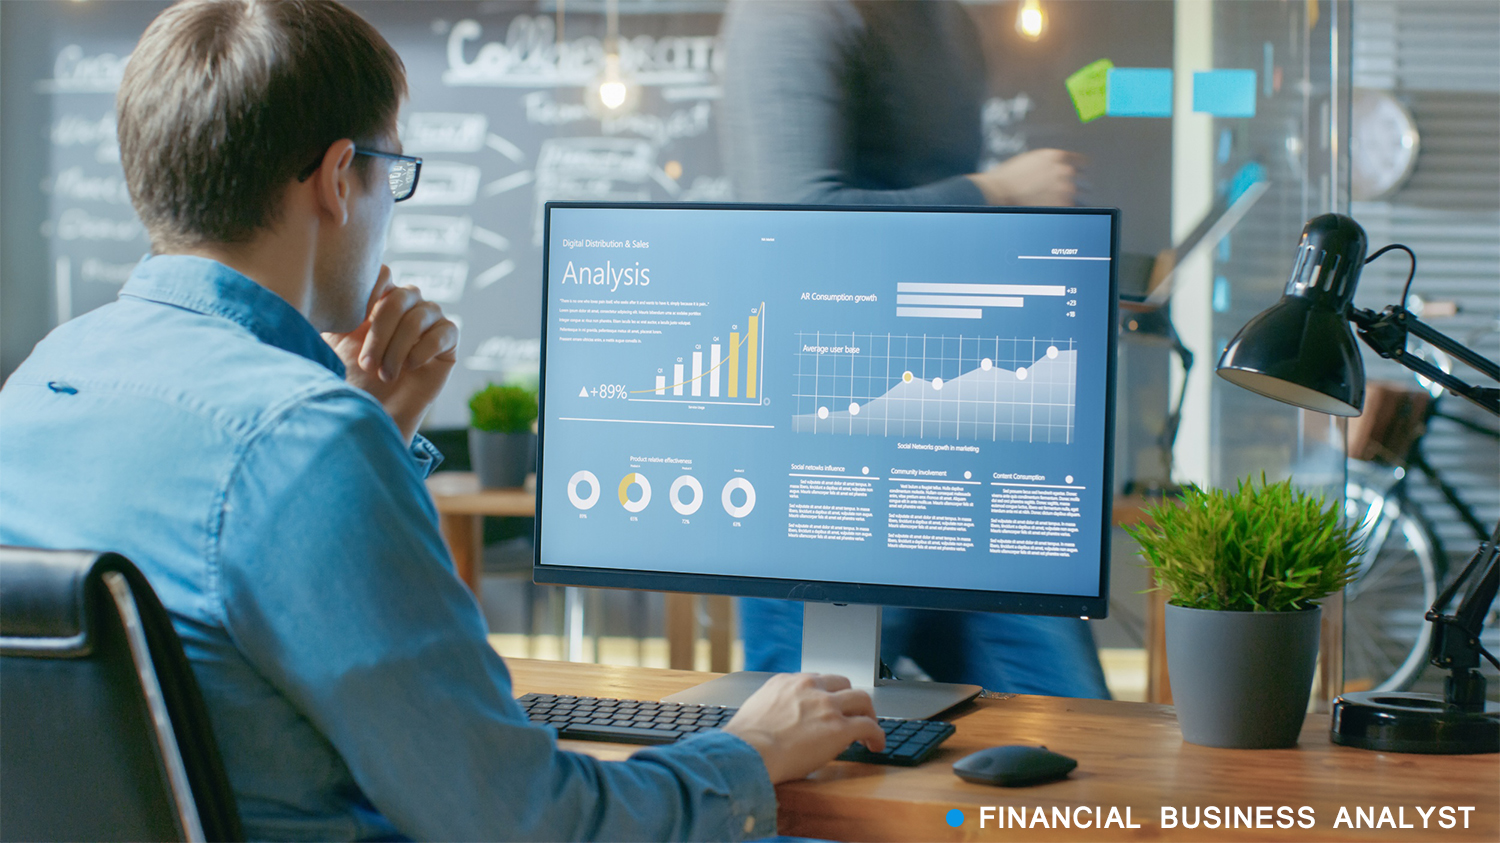 financial business analyst: an idea with low investment